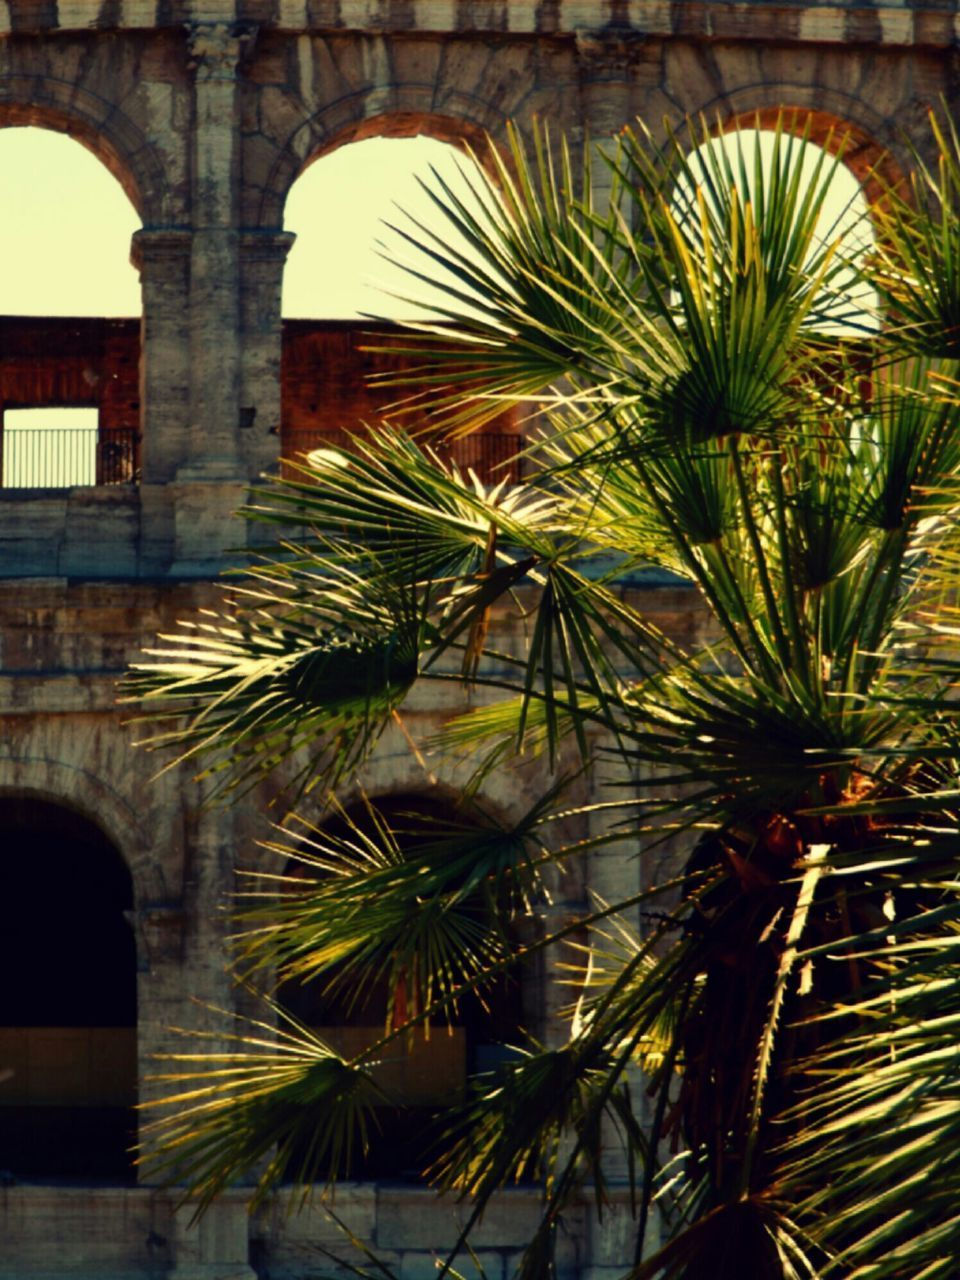 architecture, built structure, palm tree, outdoors, day, no people, tree, nature, close-up